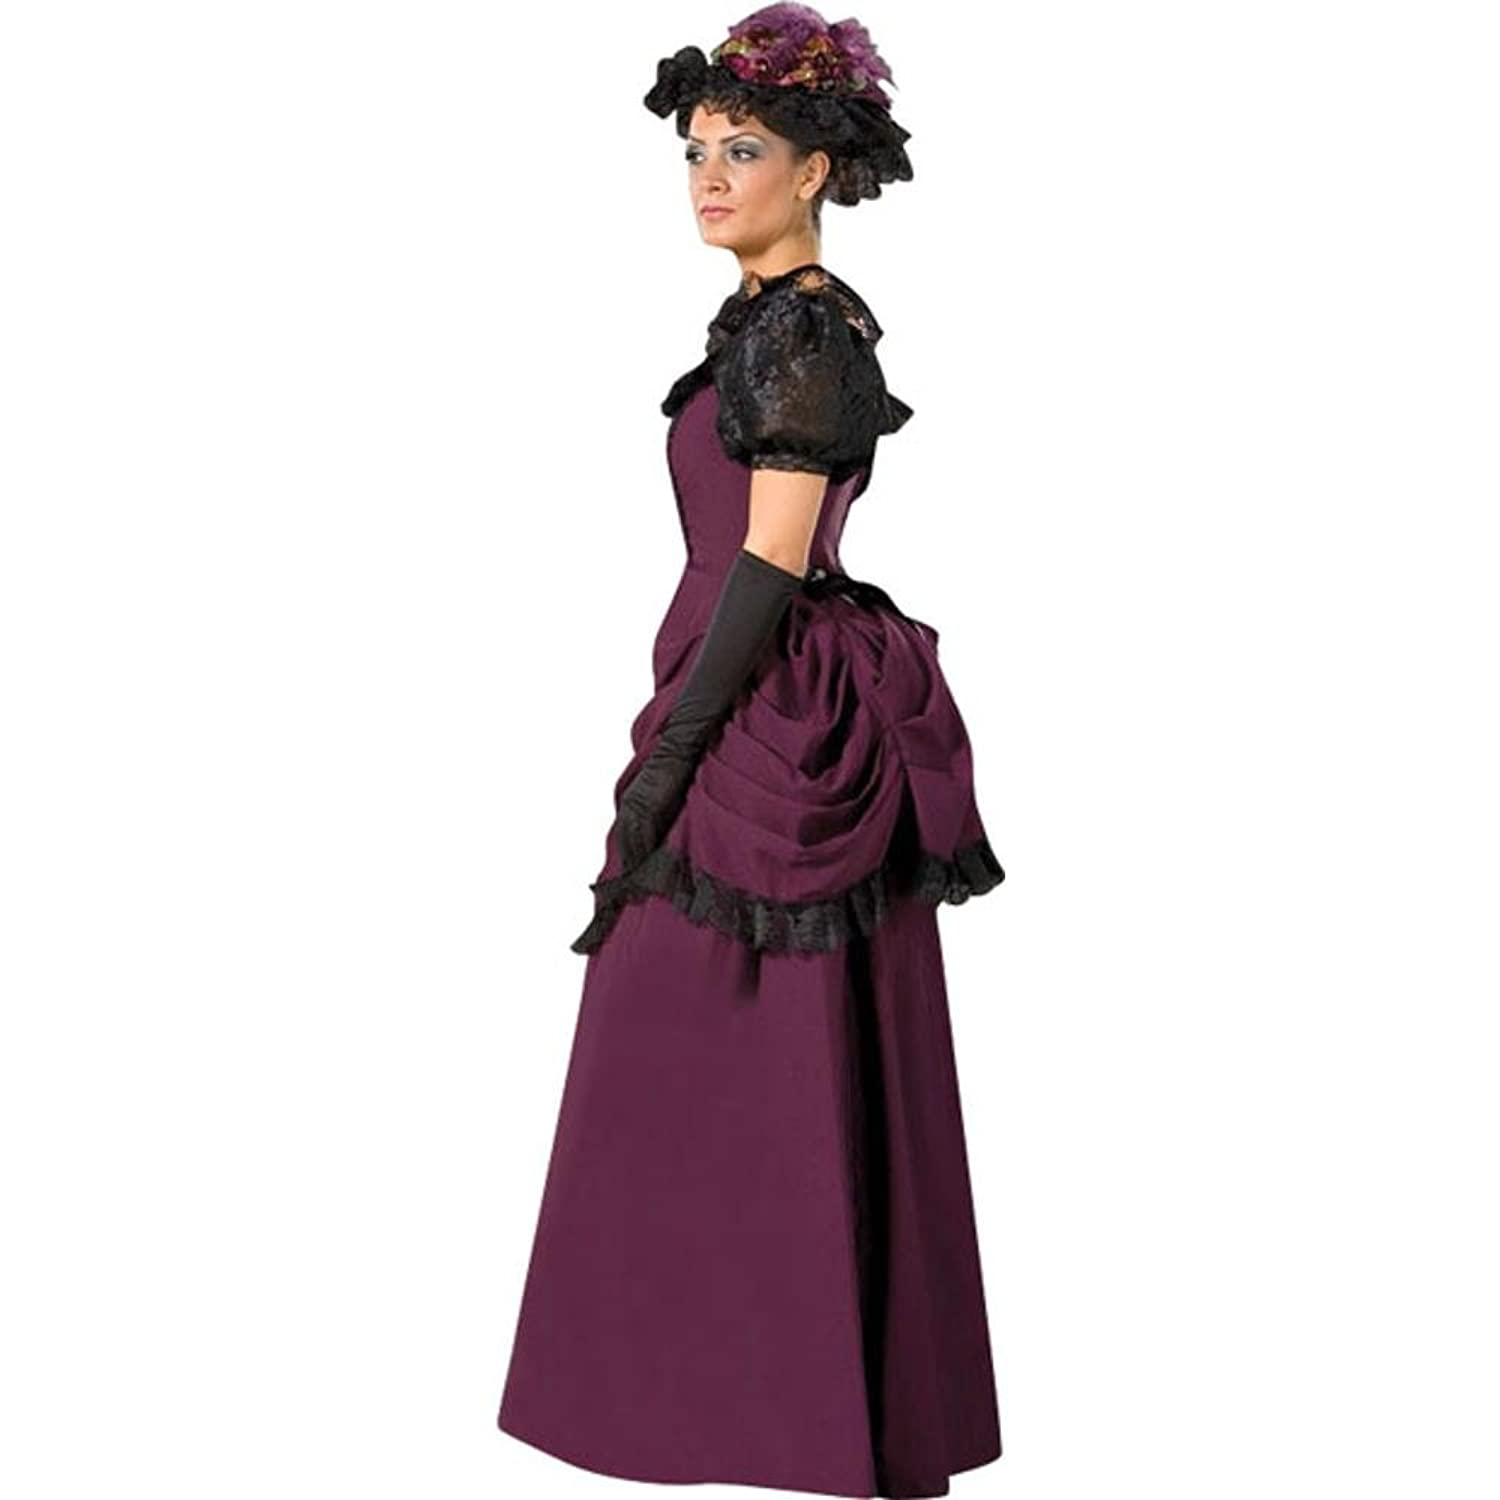 Edwardian Costumes – Cheap Halloween Costumes Womens 19th Centry Victorian Dress Theater Costume $253.99 AT vintagedancer.com